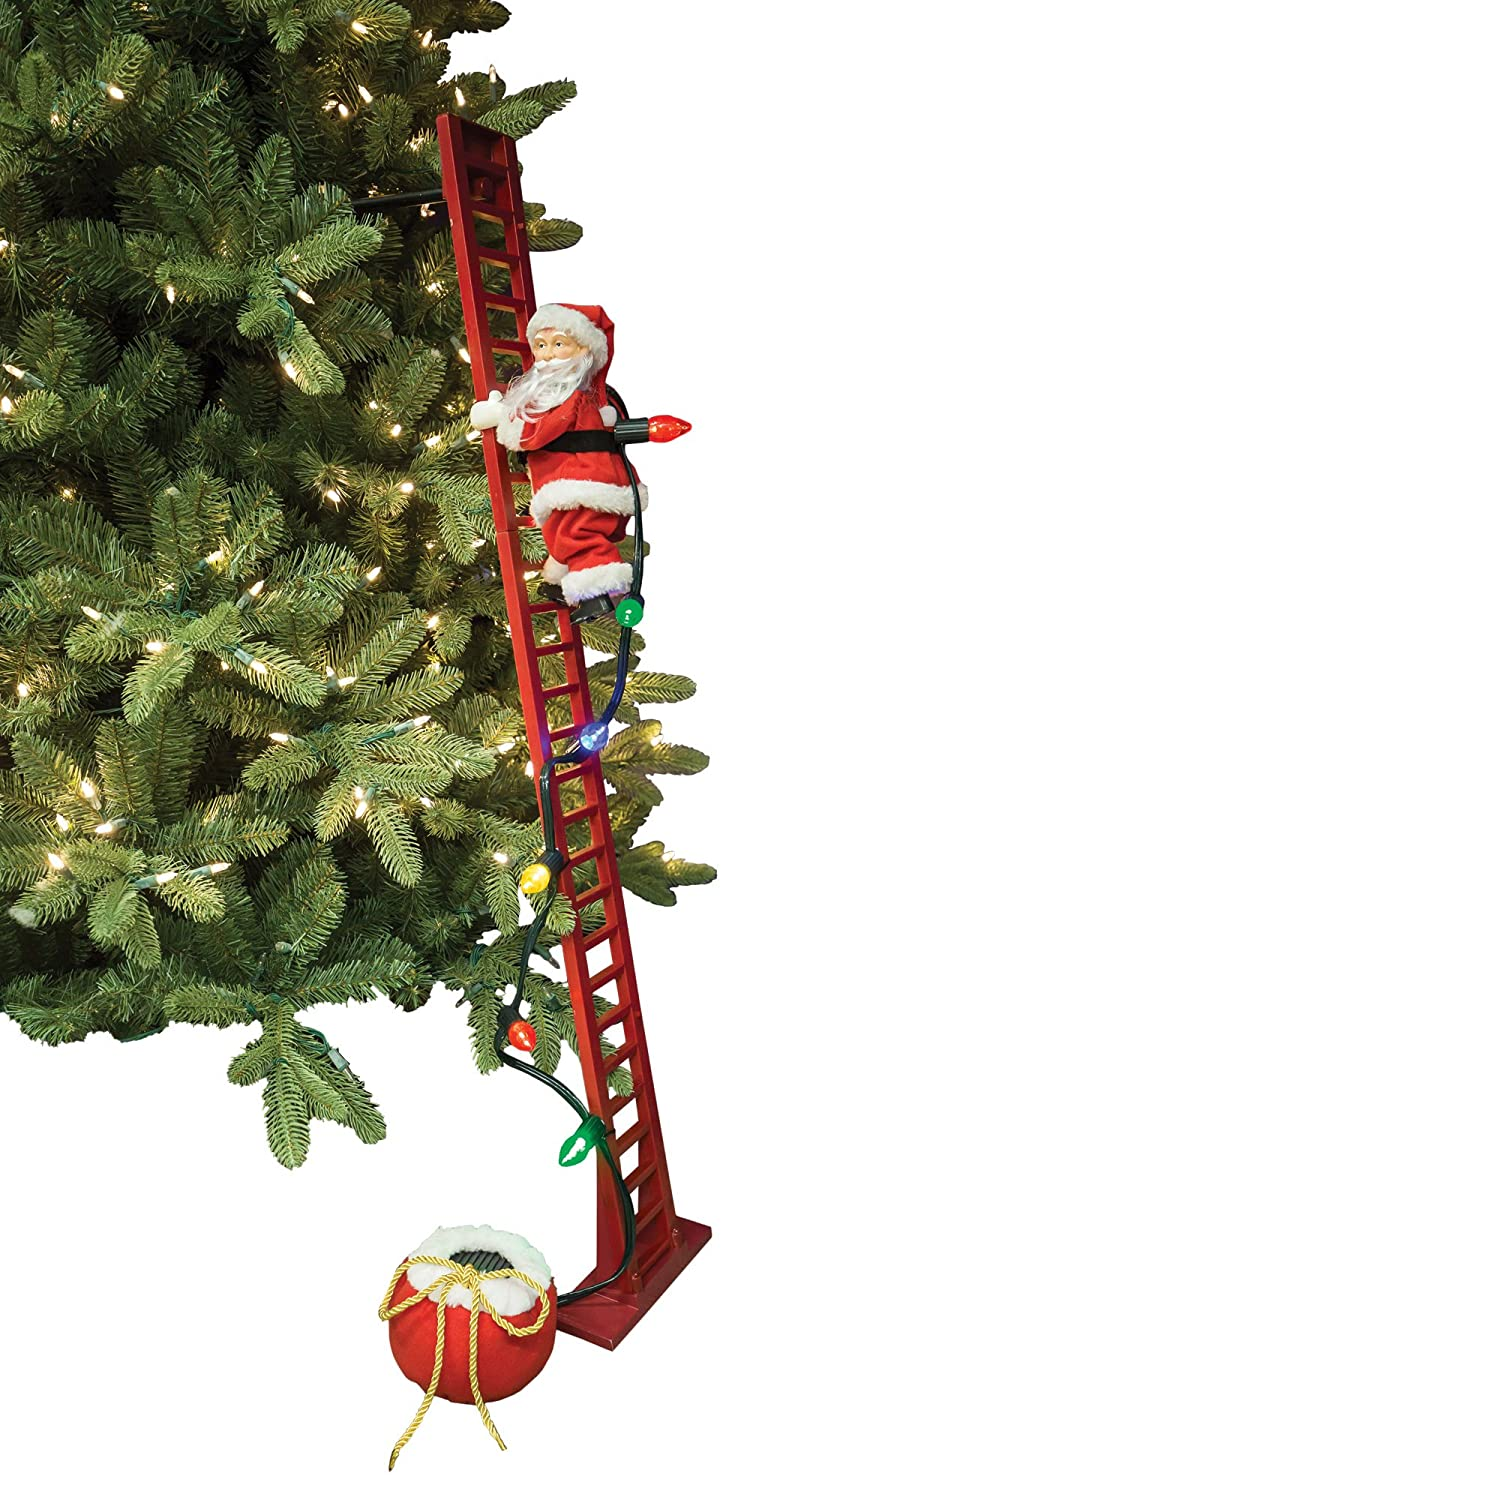 Amazon.com: Mr. Christmas Super Climbing Santa: Home & Kitchen